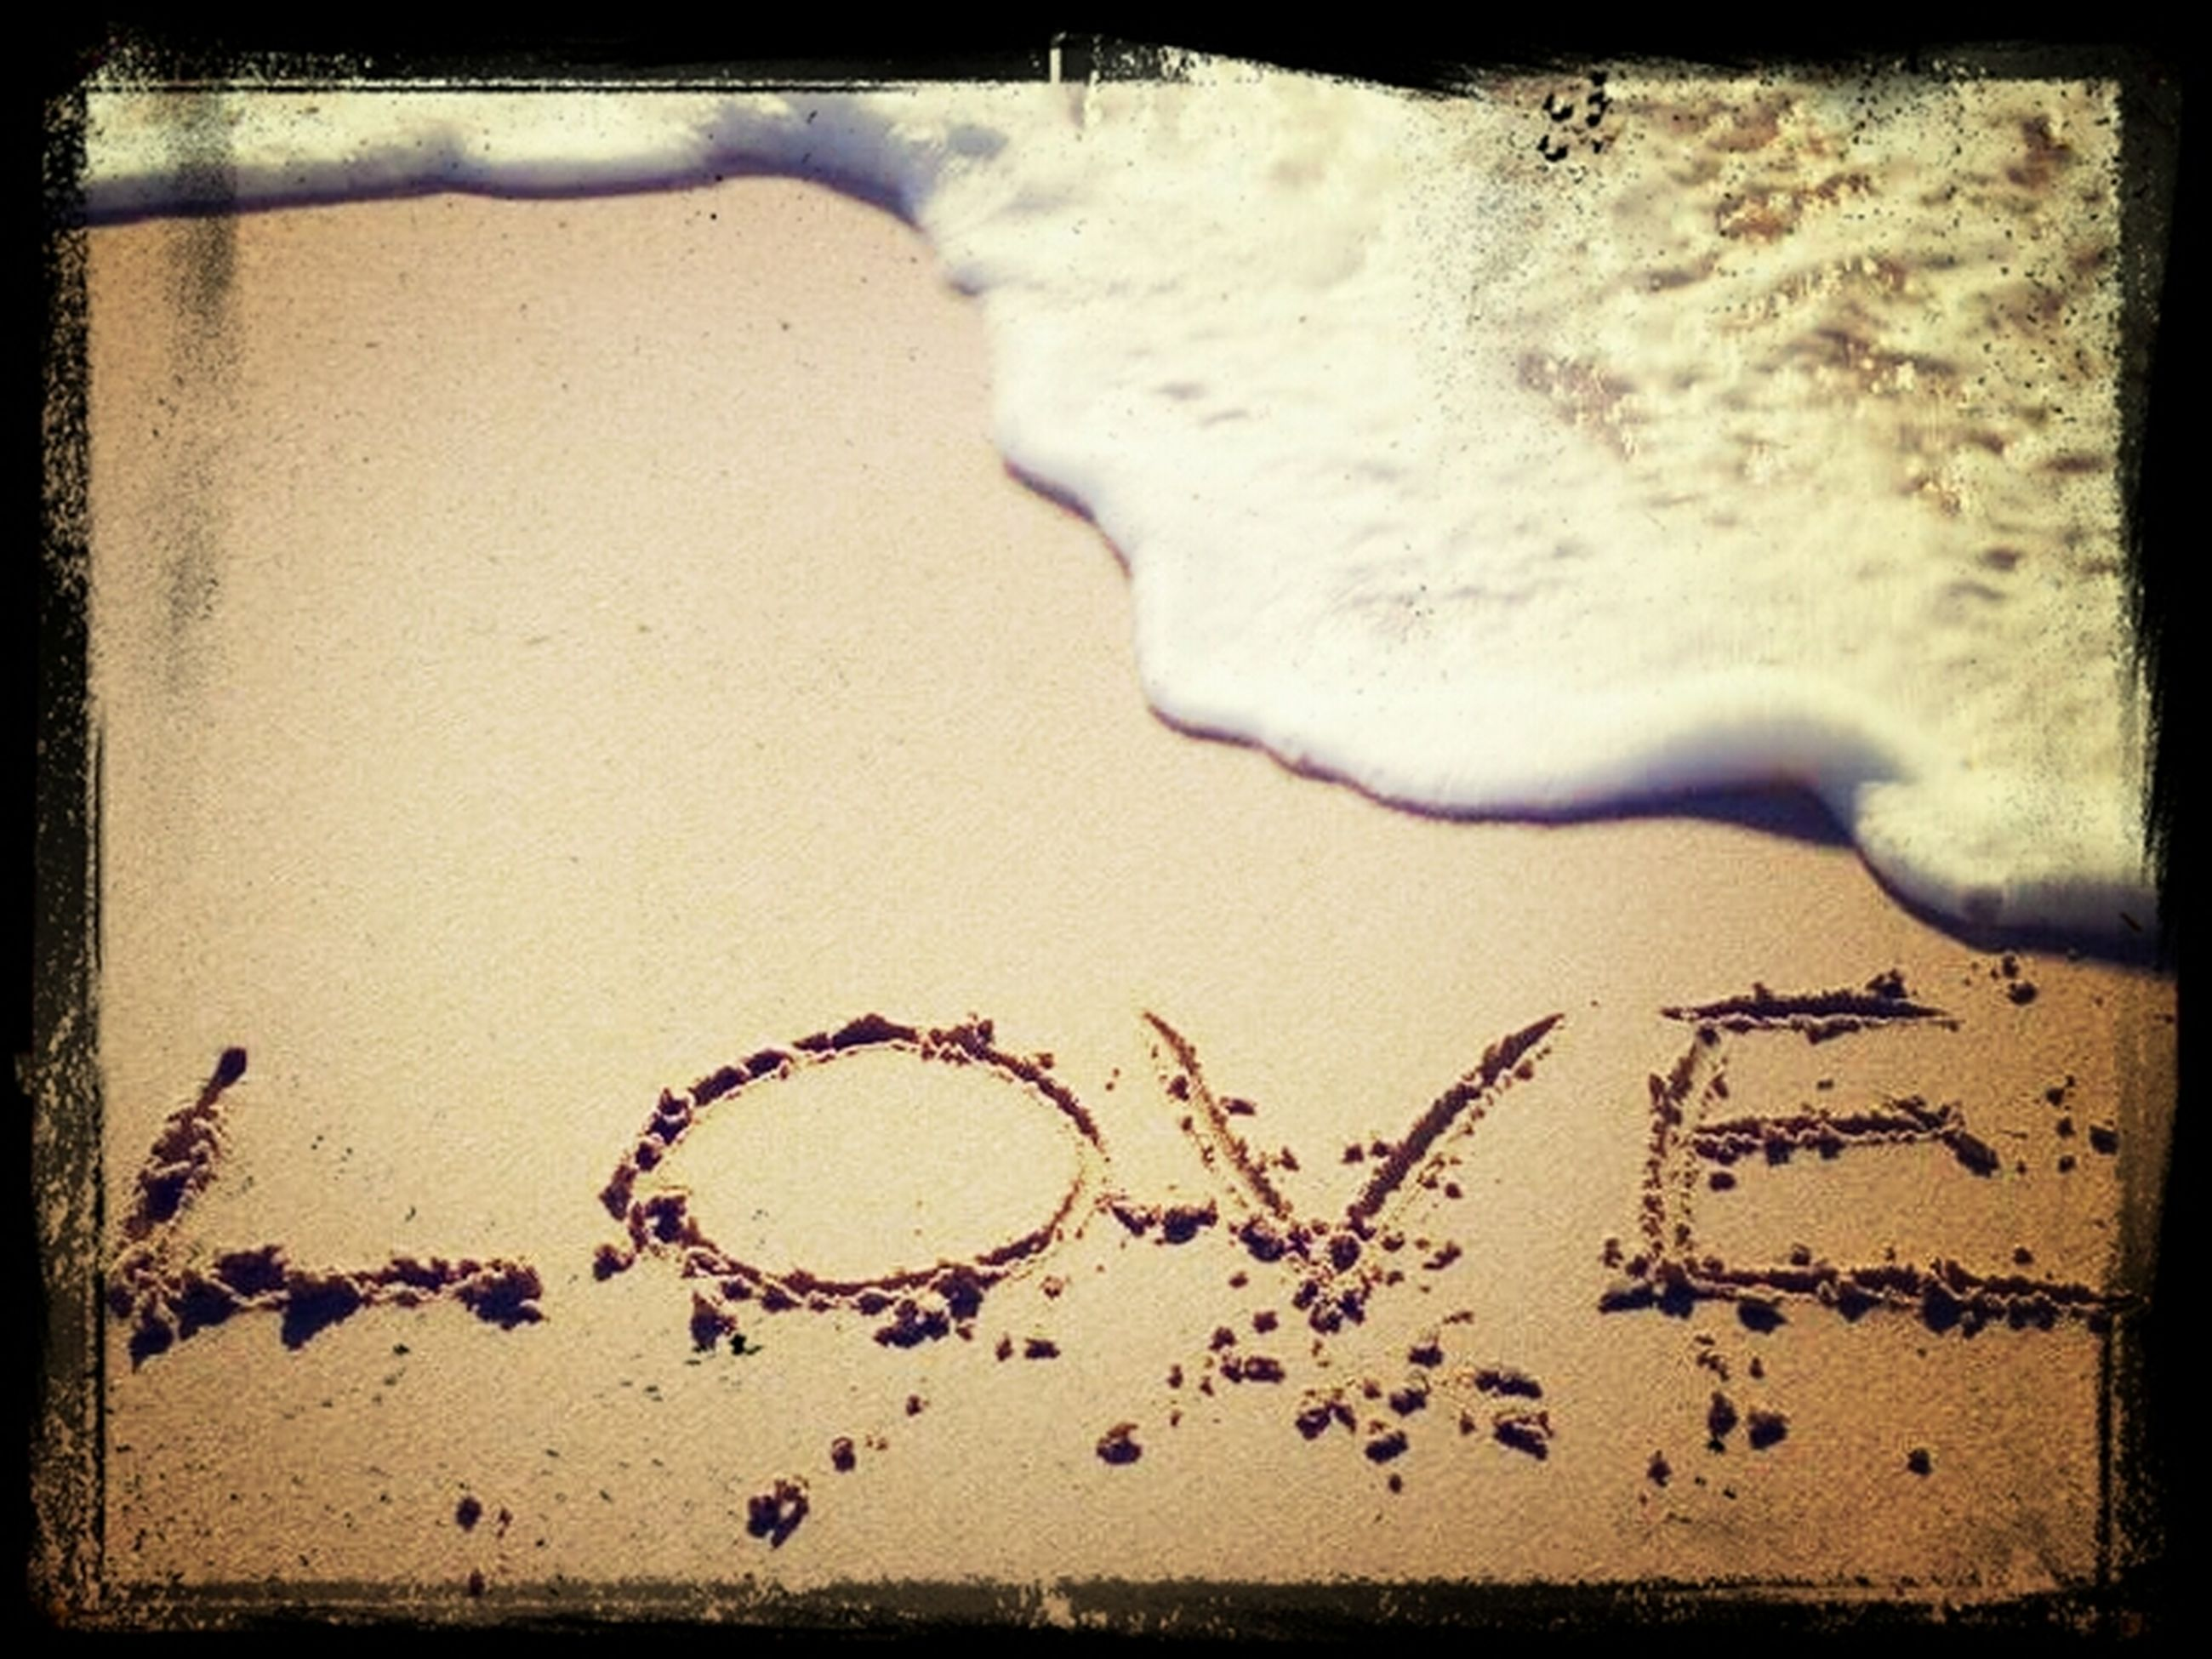 transfer print, auto post production filter, text, sand, western script, beach, high angle view, communication, close-up, heart shape, shore, no people, day, outdoors, love, vignette, capital letter, footprint, wall - building feature, bicycle